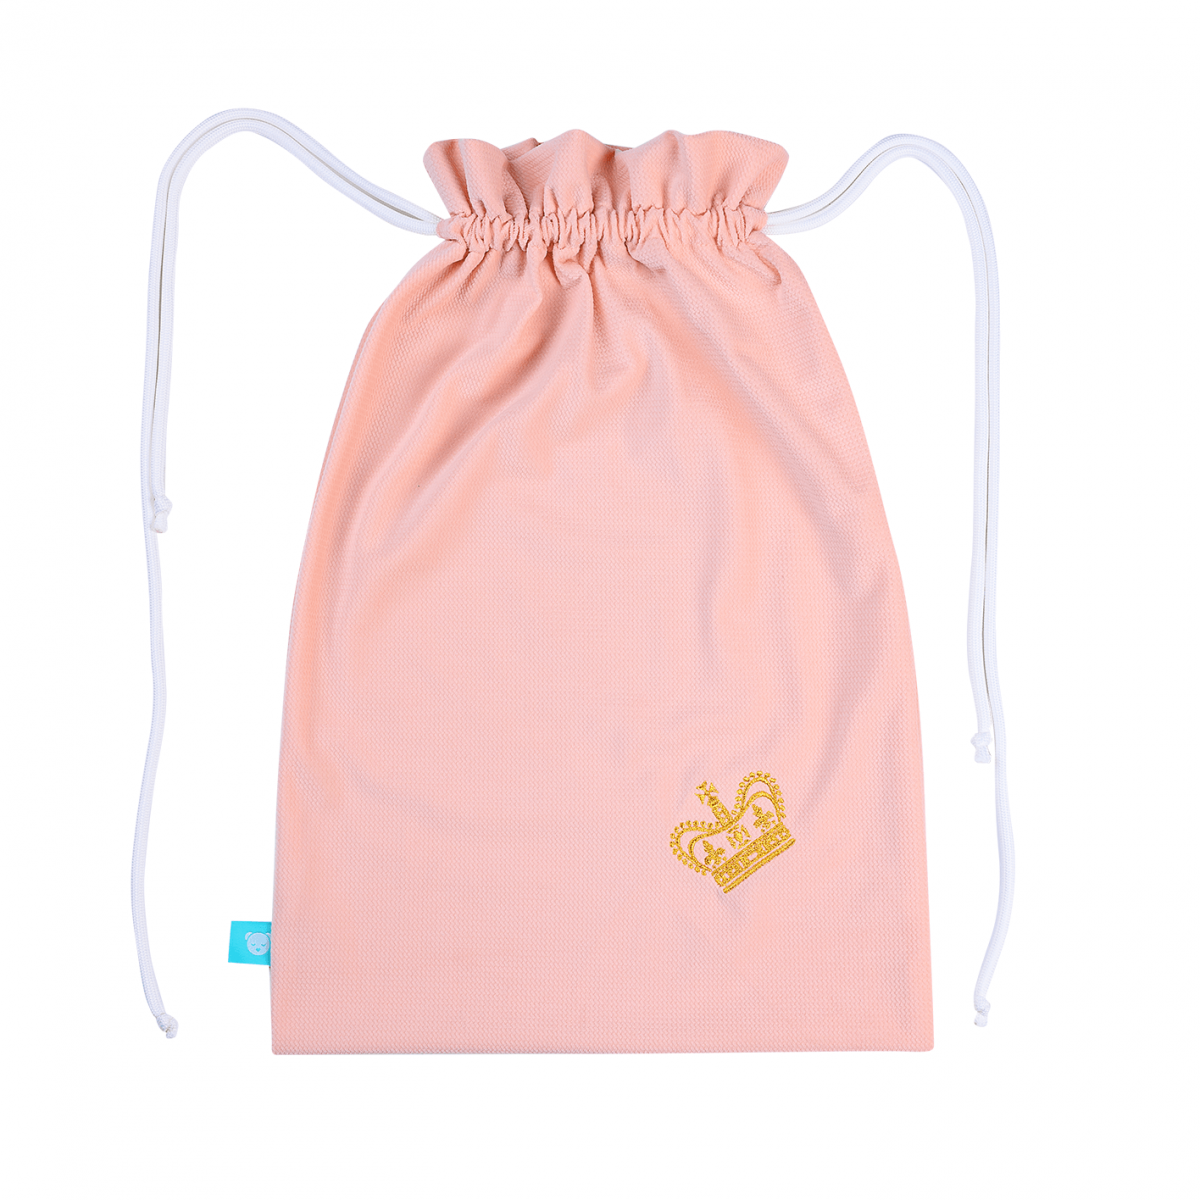 ROYAL LIMITED EDITION SOPHIE - Senzor spánku + deka UNI pink + royal bag